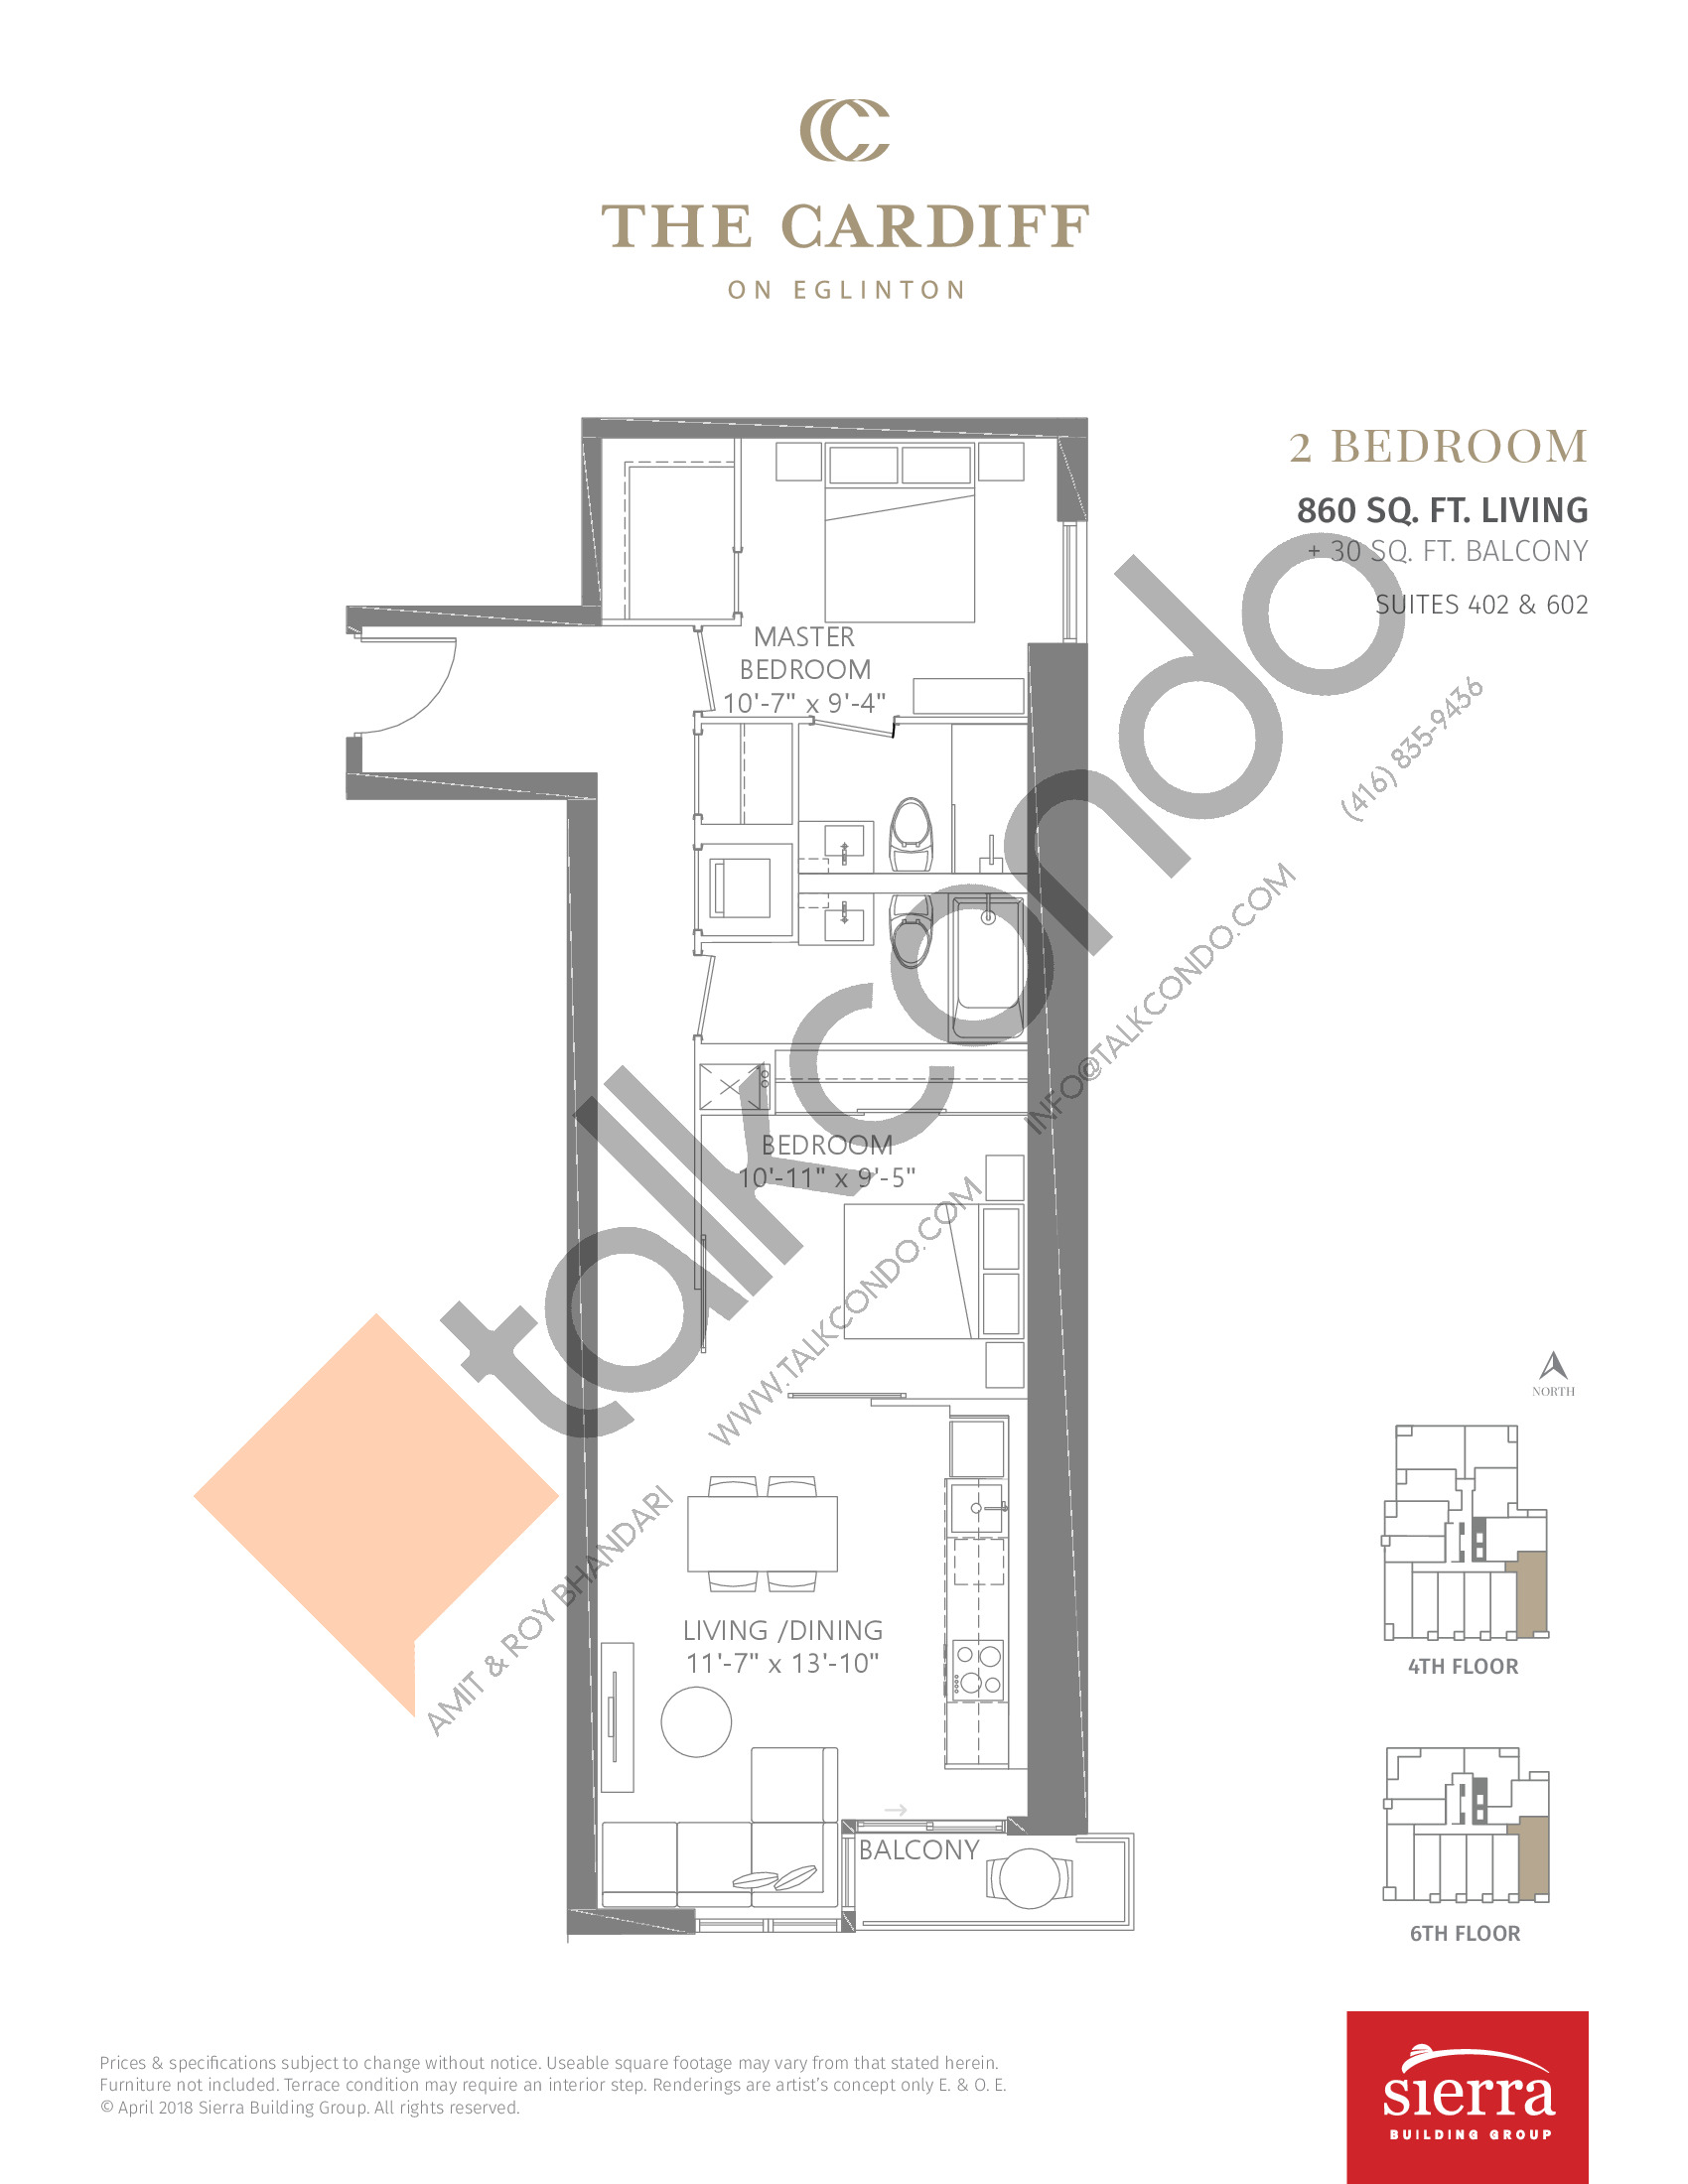 Suites 402 & 602 Floor Plan at The Cardiff Condos on Eglinton - 860 sq.ft